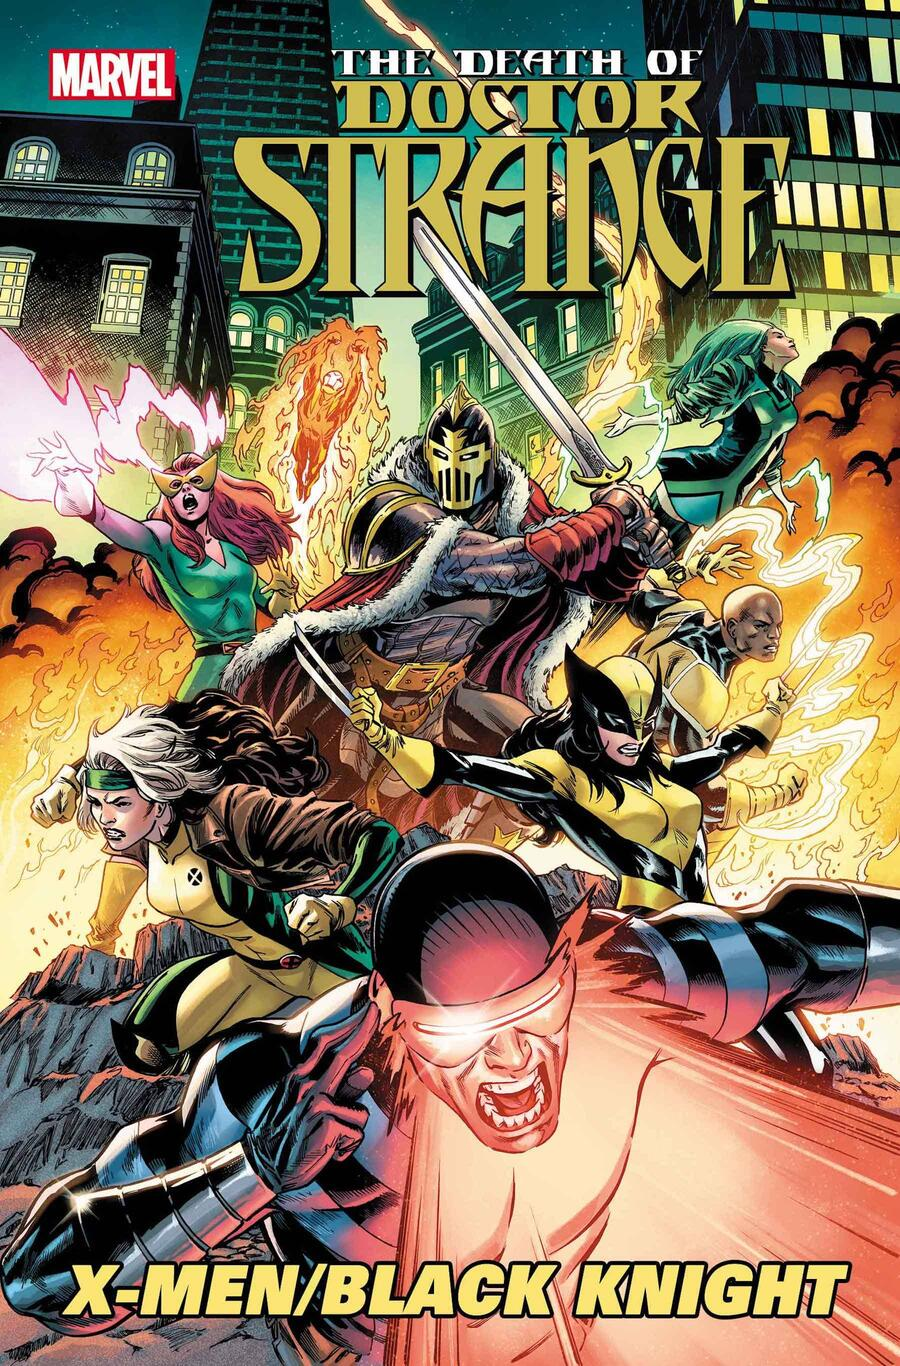 DEATH OF DOCTOR STRANGE: X-MEN/BLACK KNIGHT #1 cover by Cory Smith